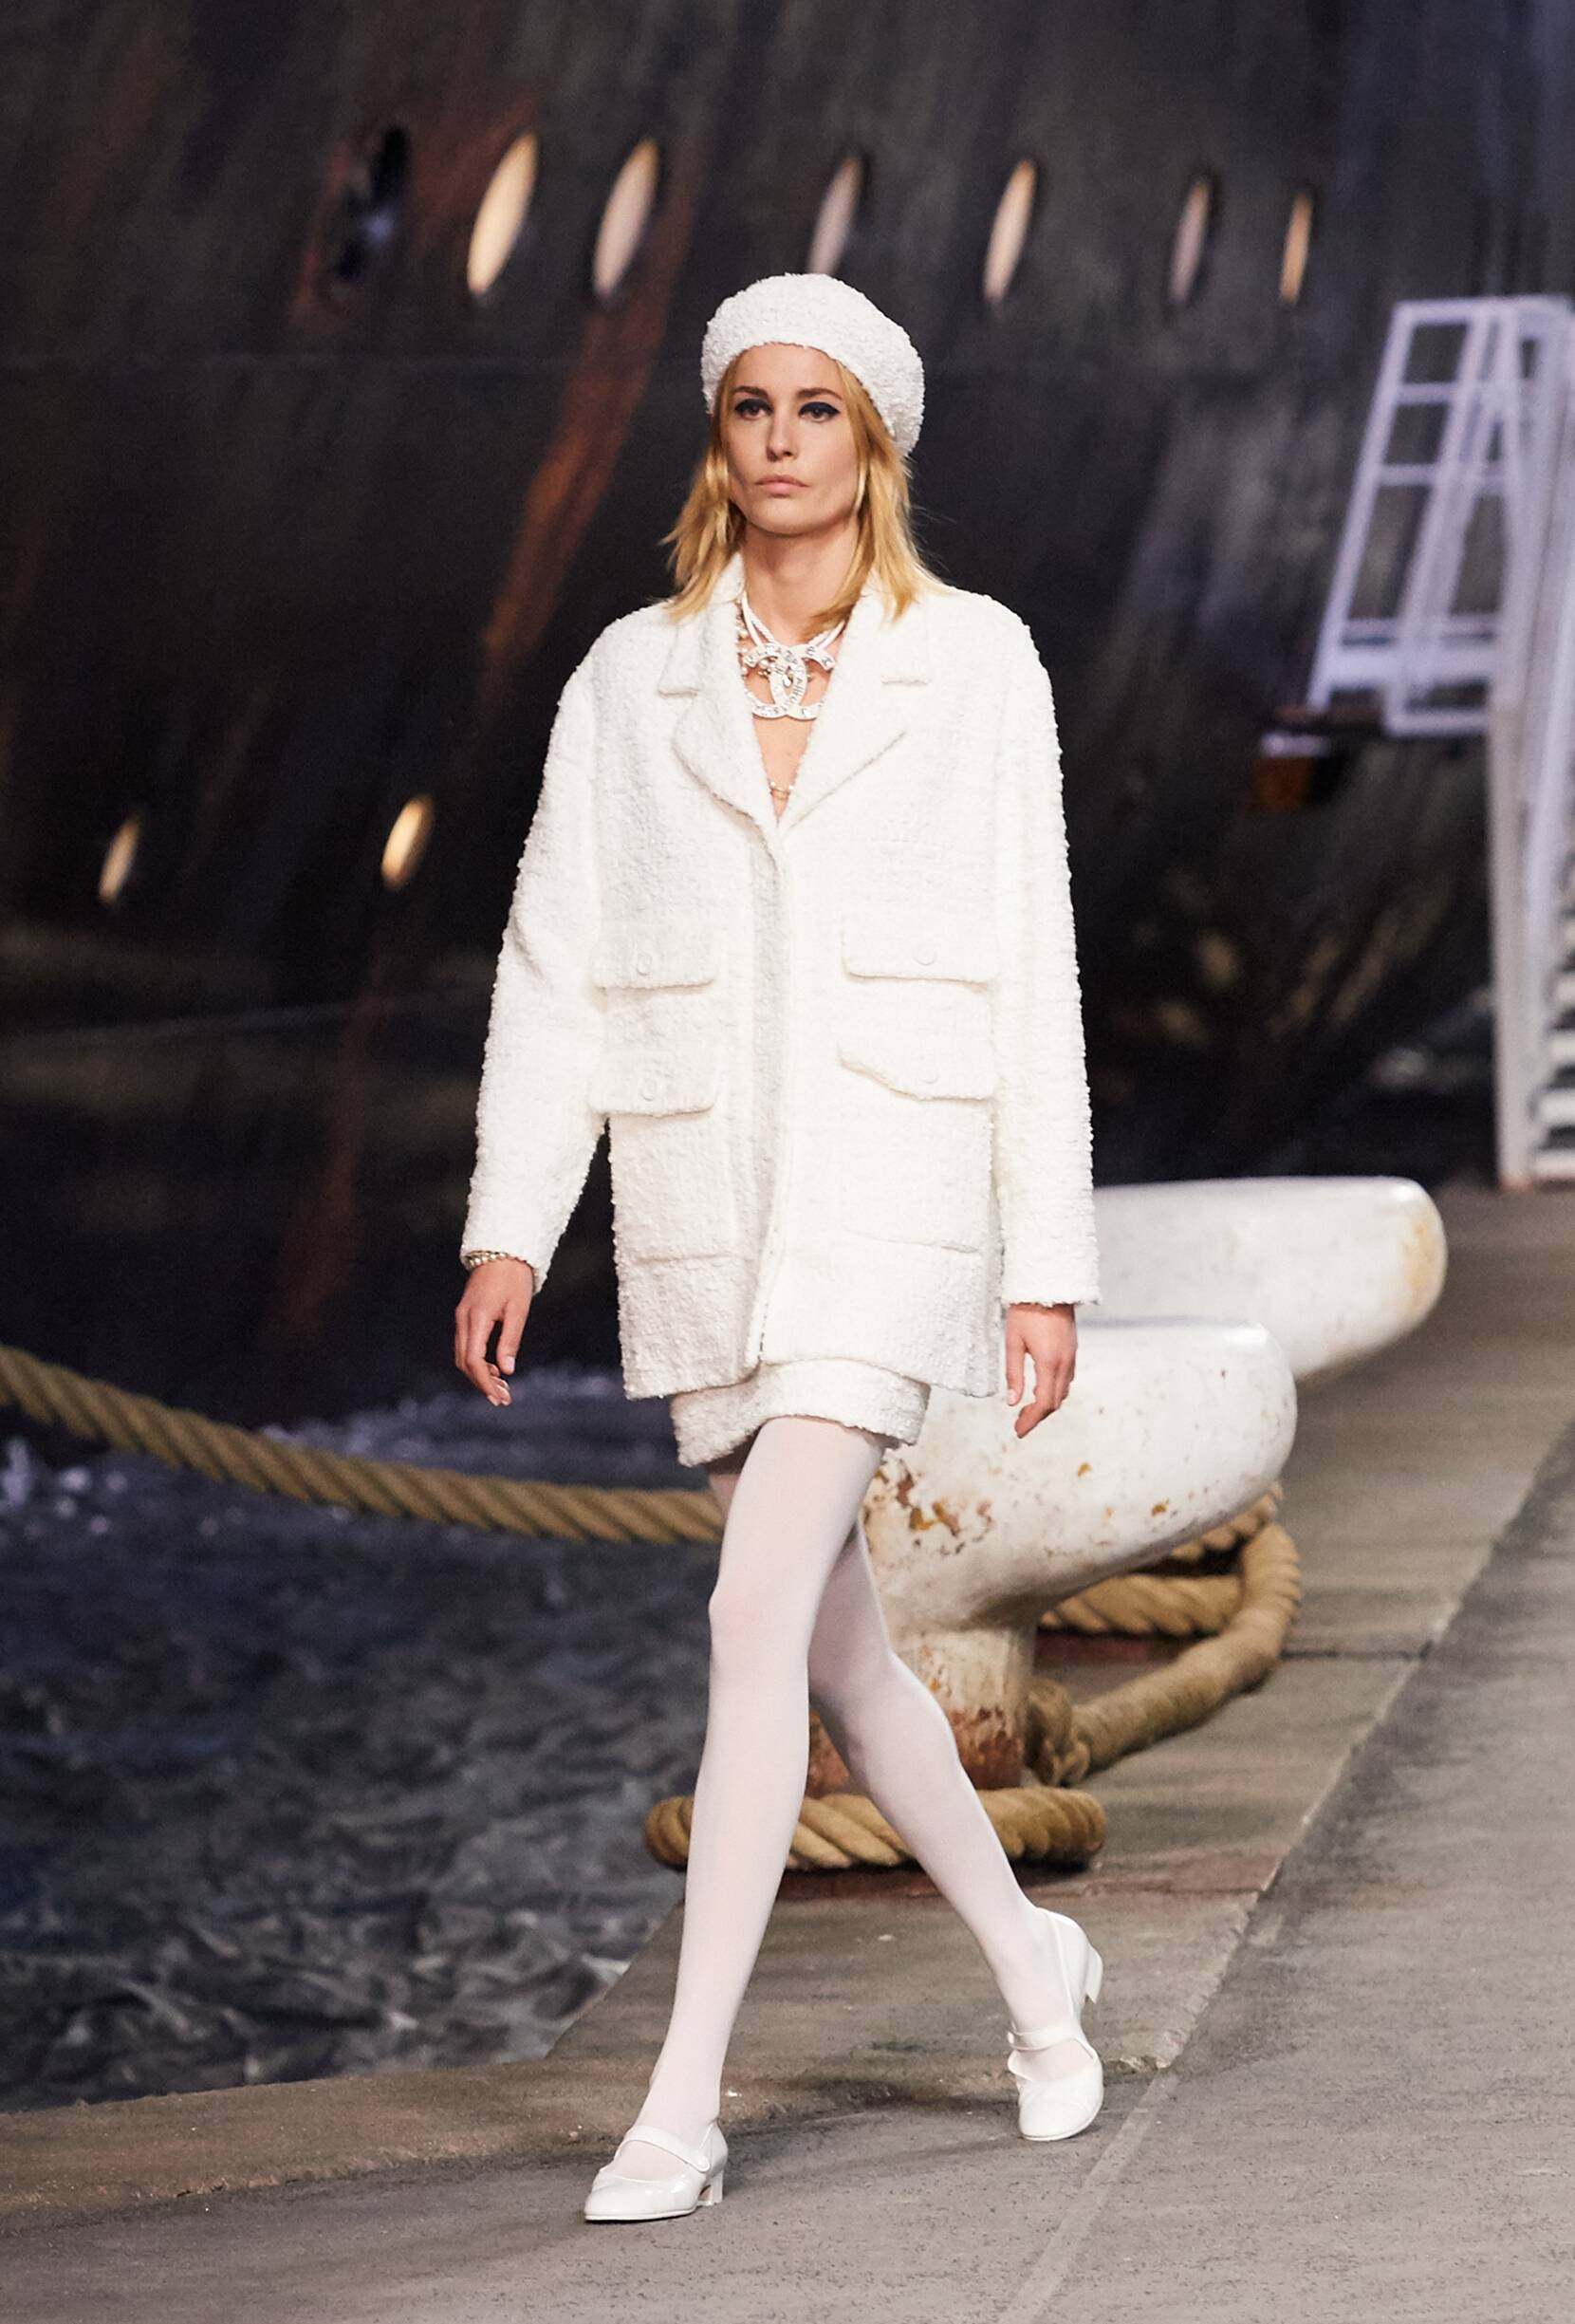 Chanel Cruise Collection 2018-19 Look 6 Paris